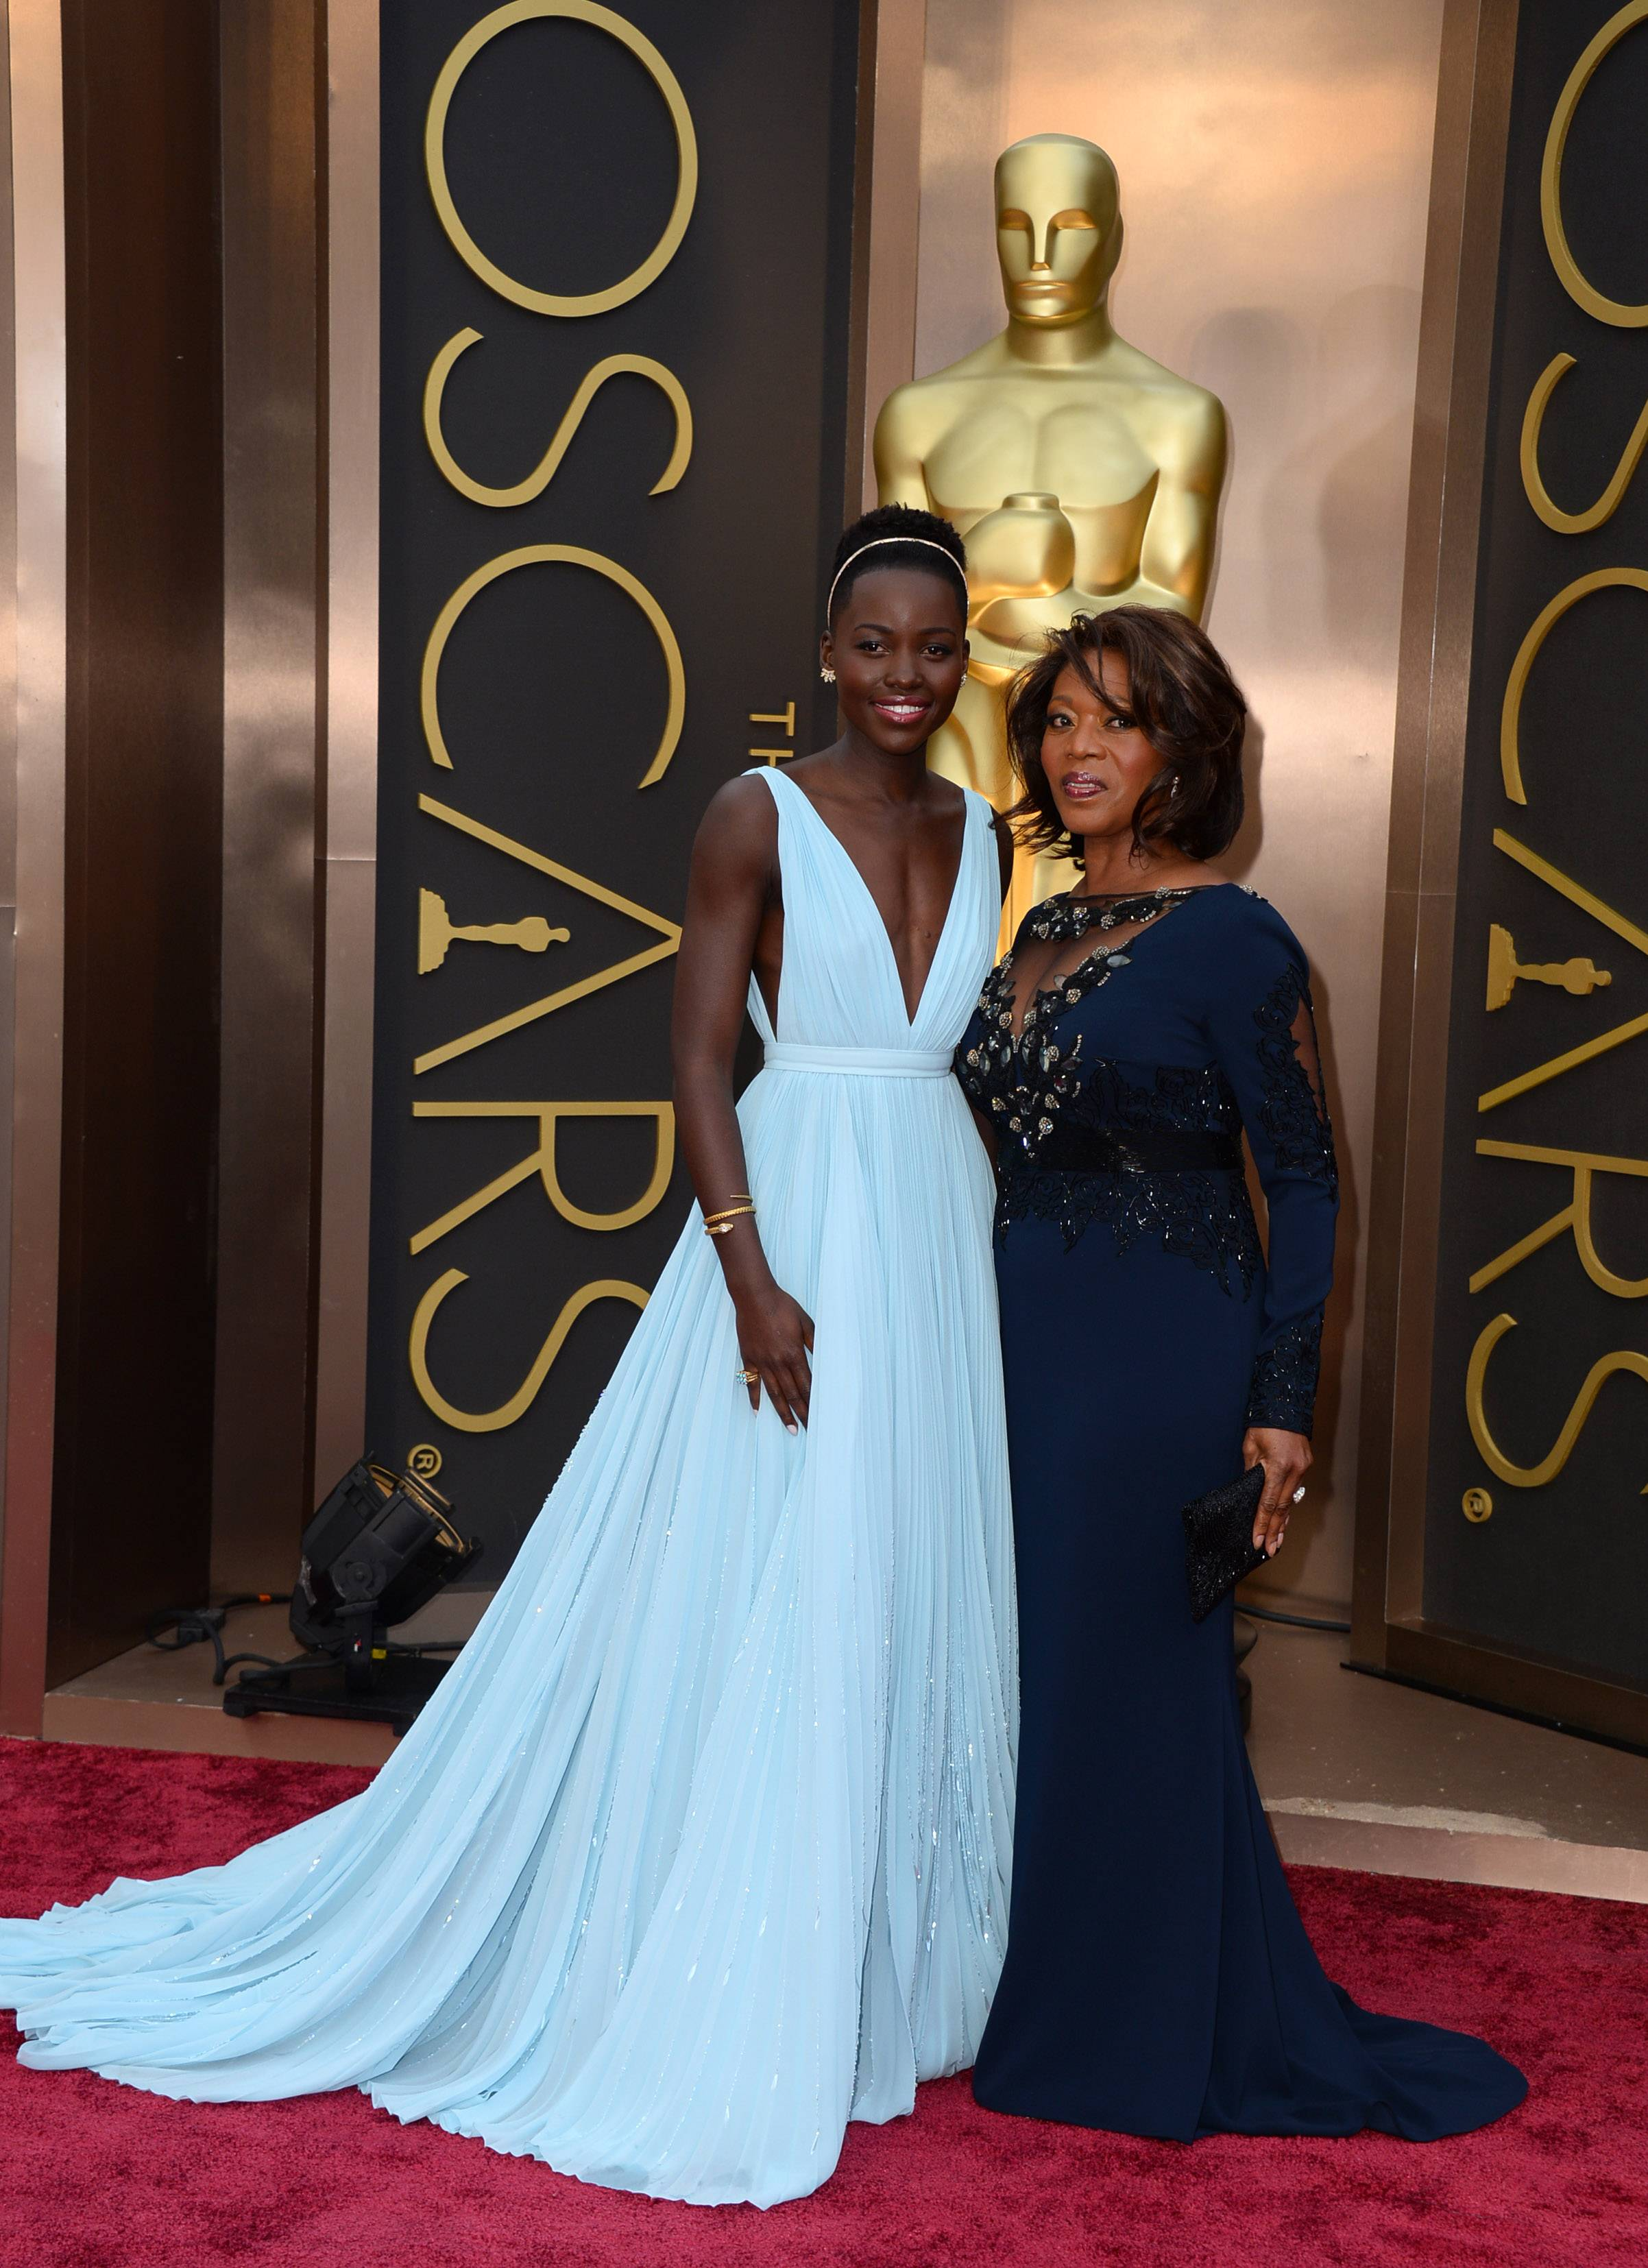 Lupita Nyong'o, left, and Alfre Woodard pose for photographers on the Oscar red carpet.